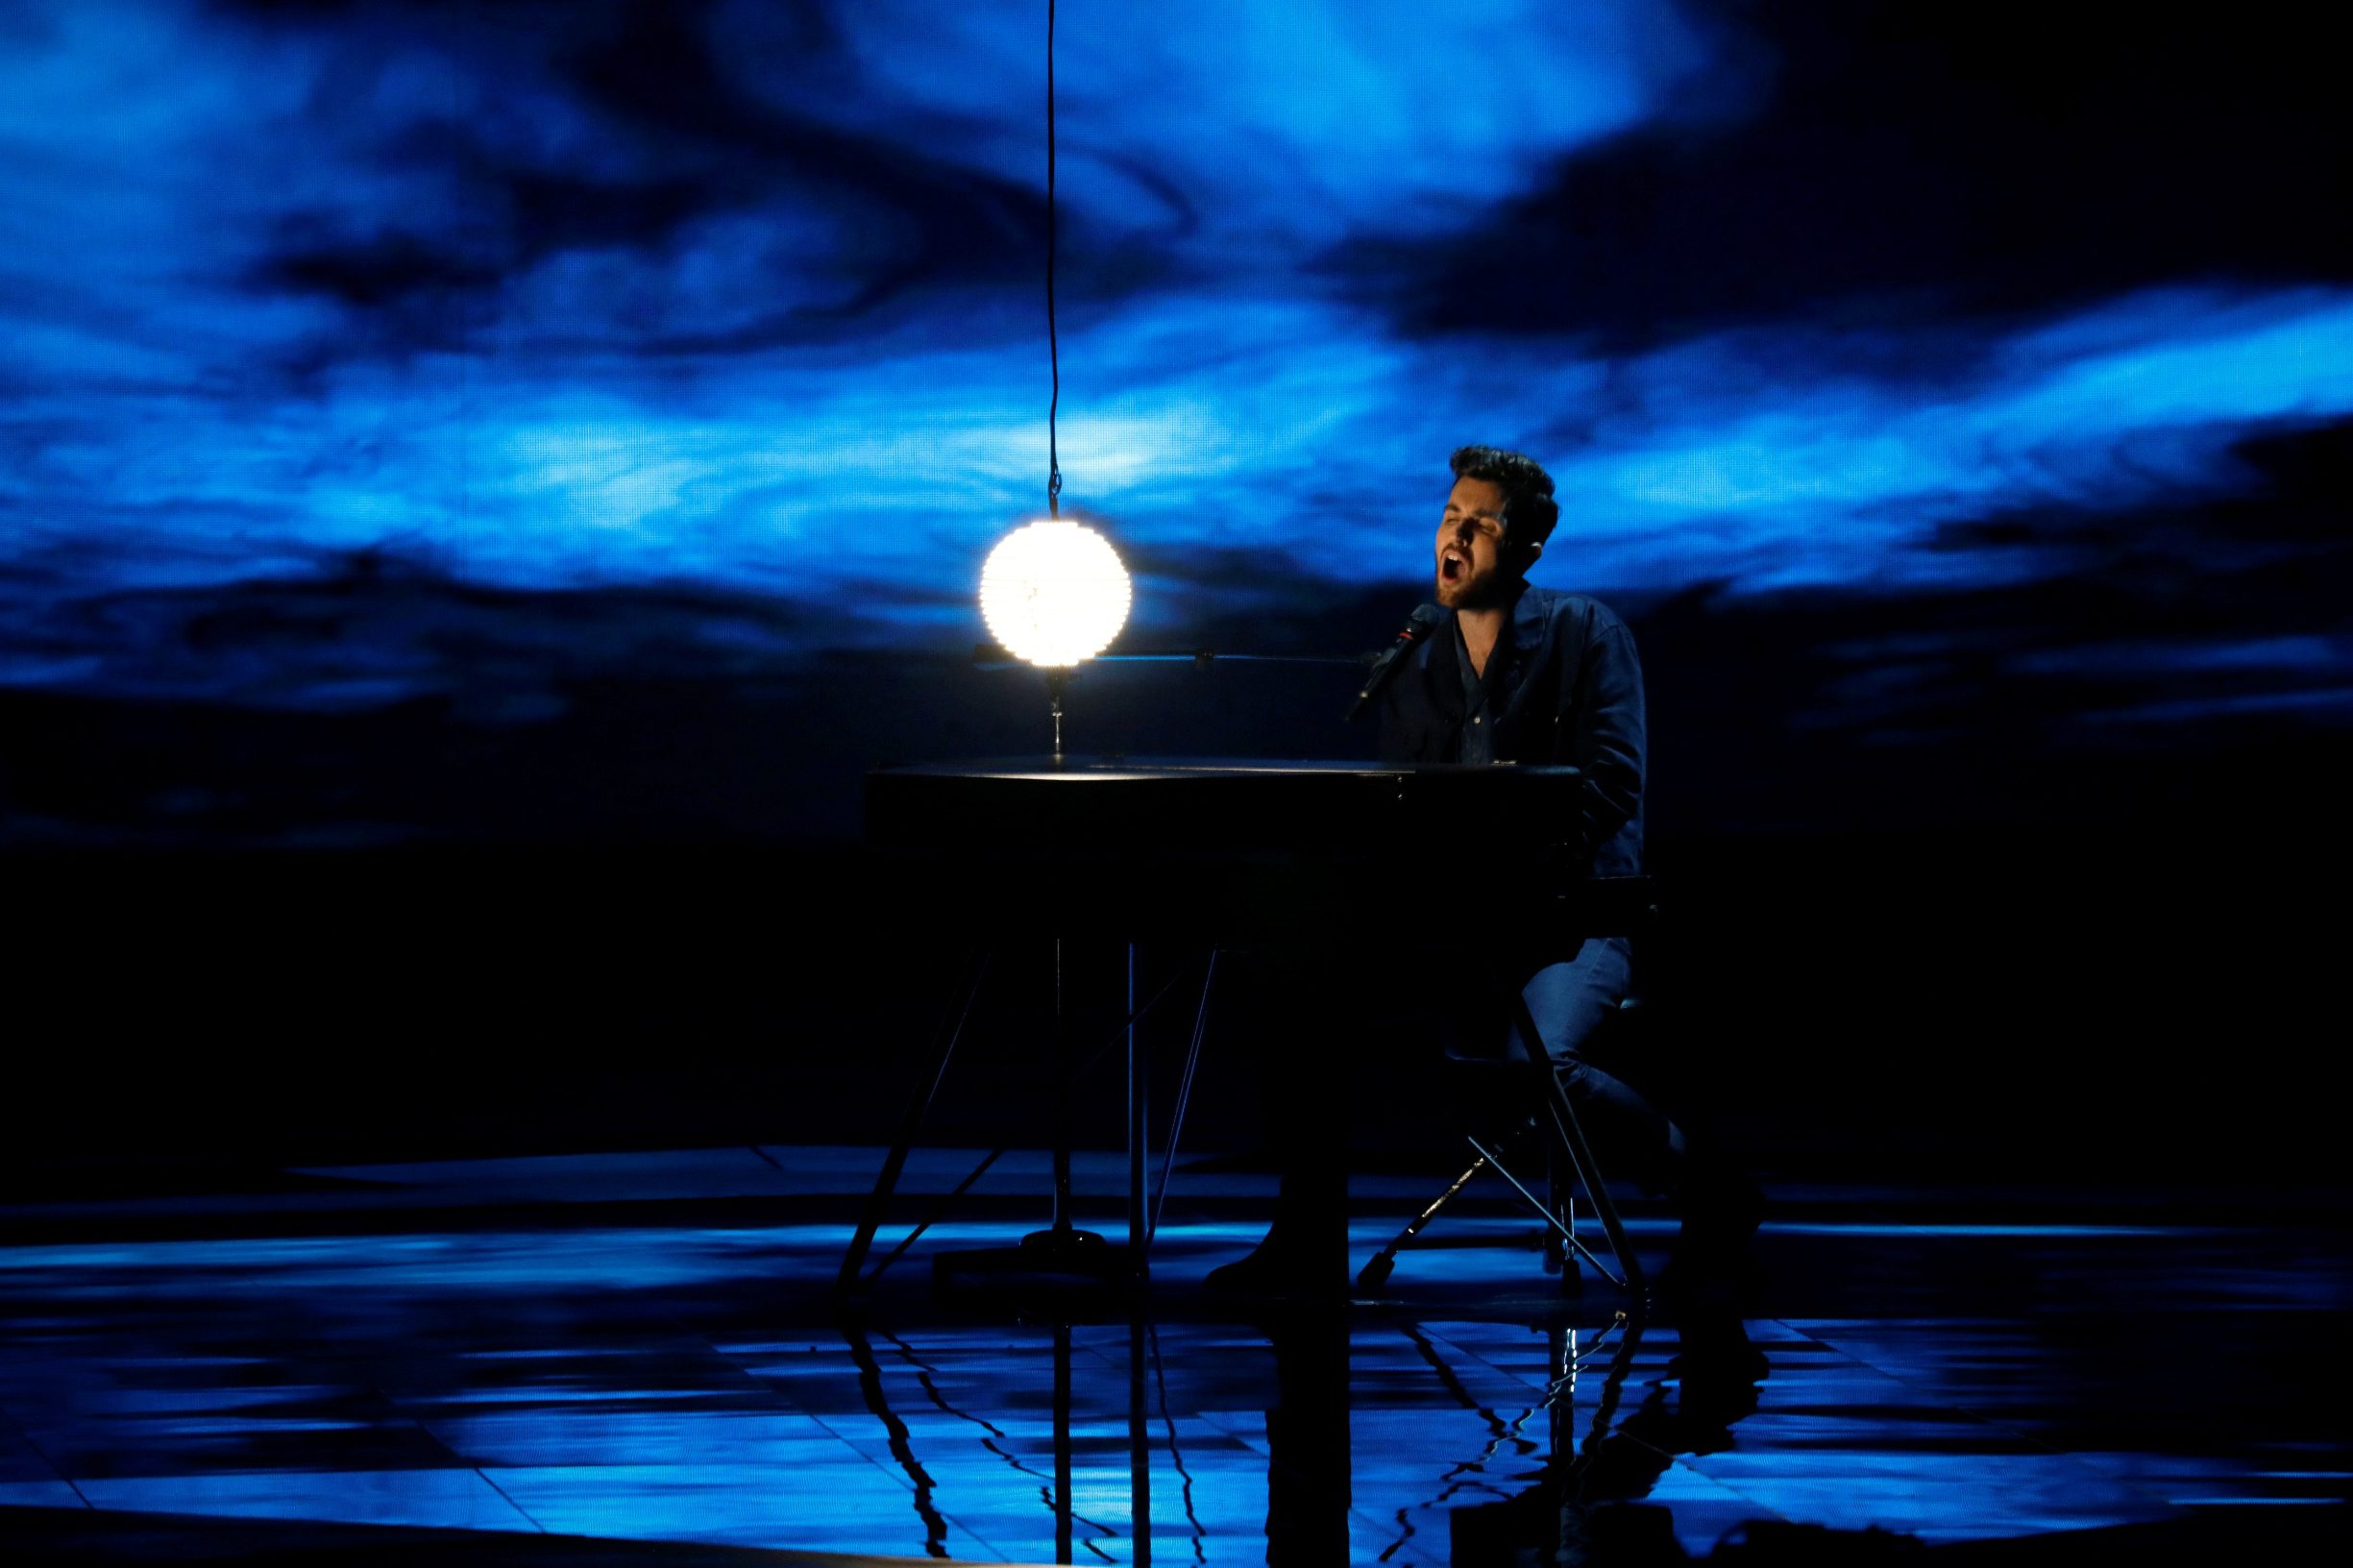 Participant Duncan Laurence of The Netherlands performs during second semi-final of 2019 Eurovision Song Contest in Tel Aviv, Israel May 16, 2019. REUTERS/ Amir Cohen